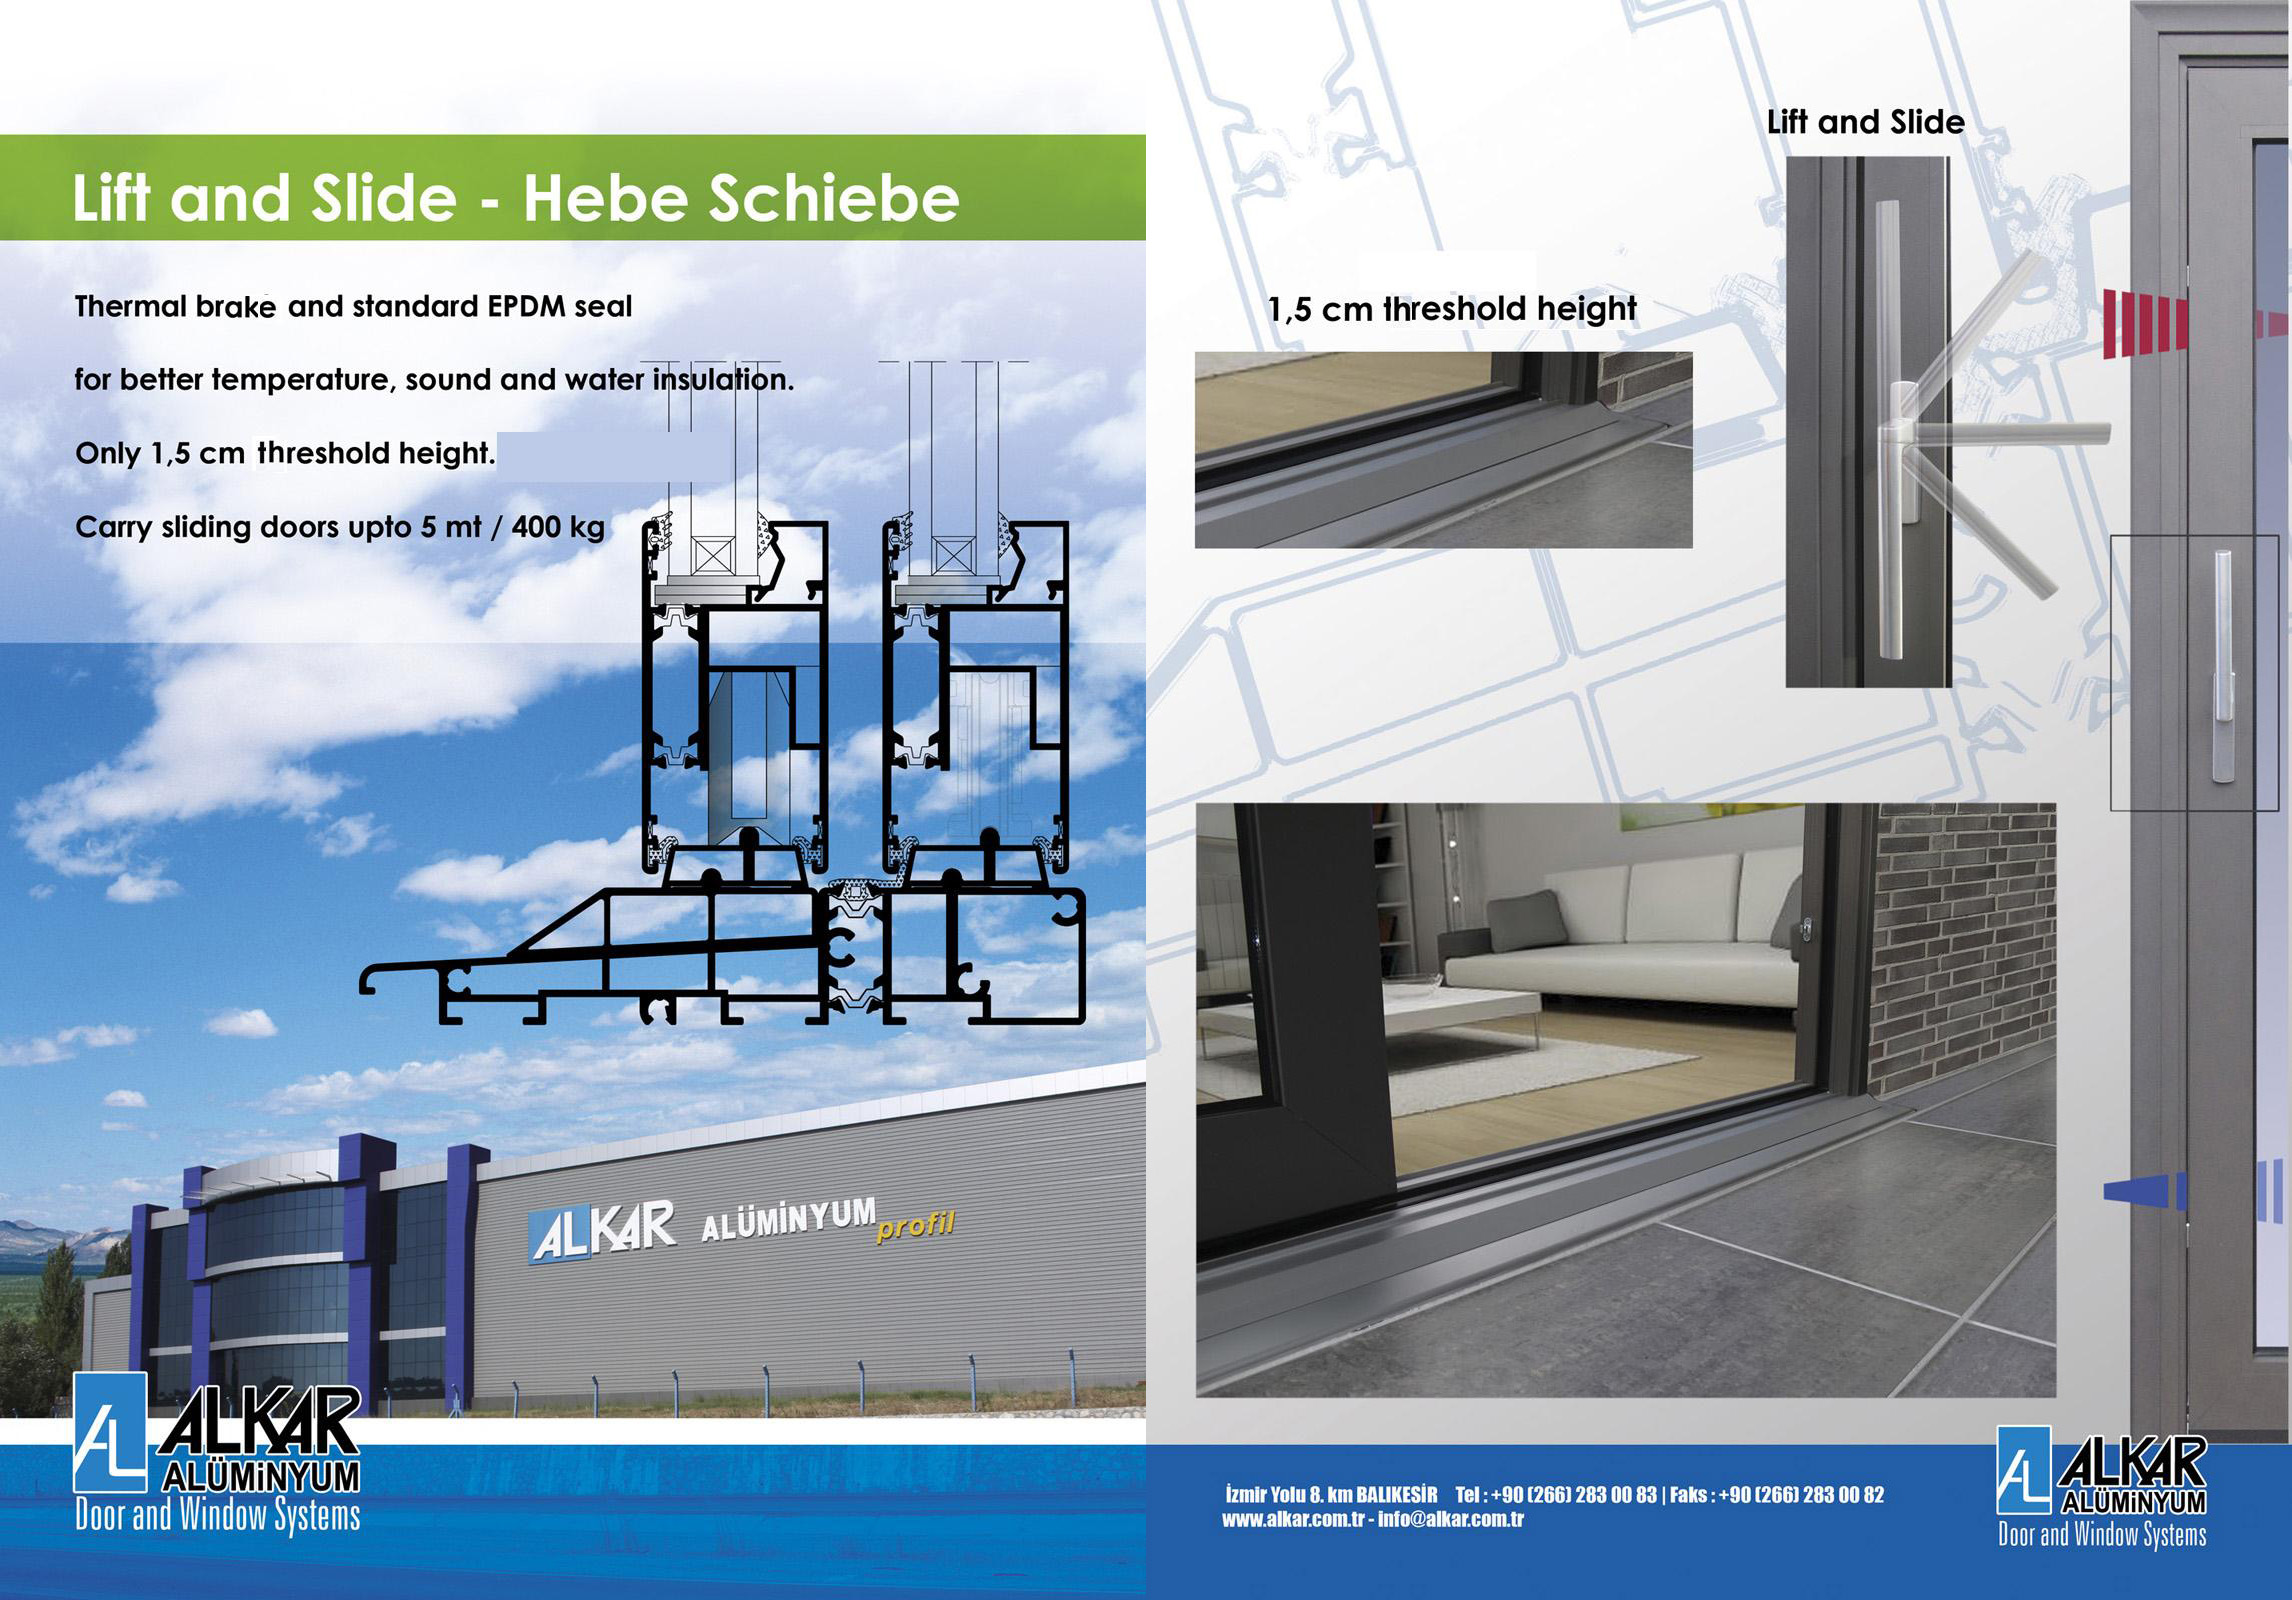 HEBE SCHIEBE LIFT & SLIDE